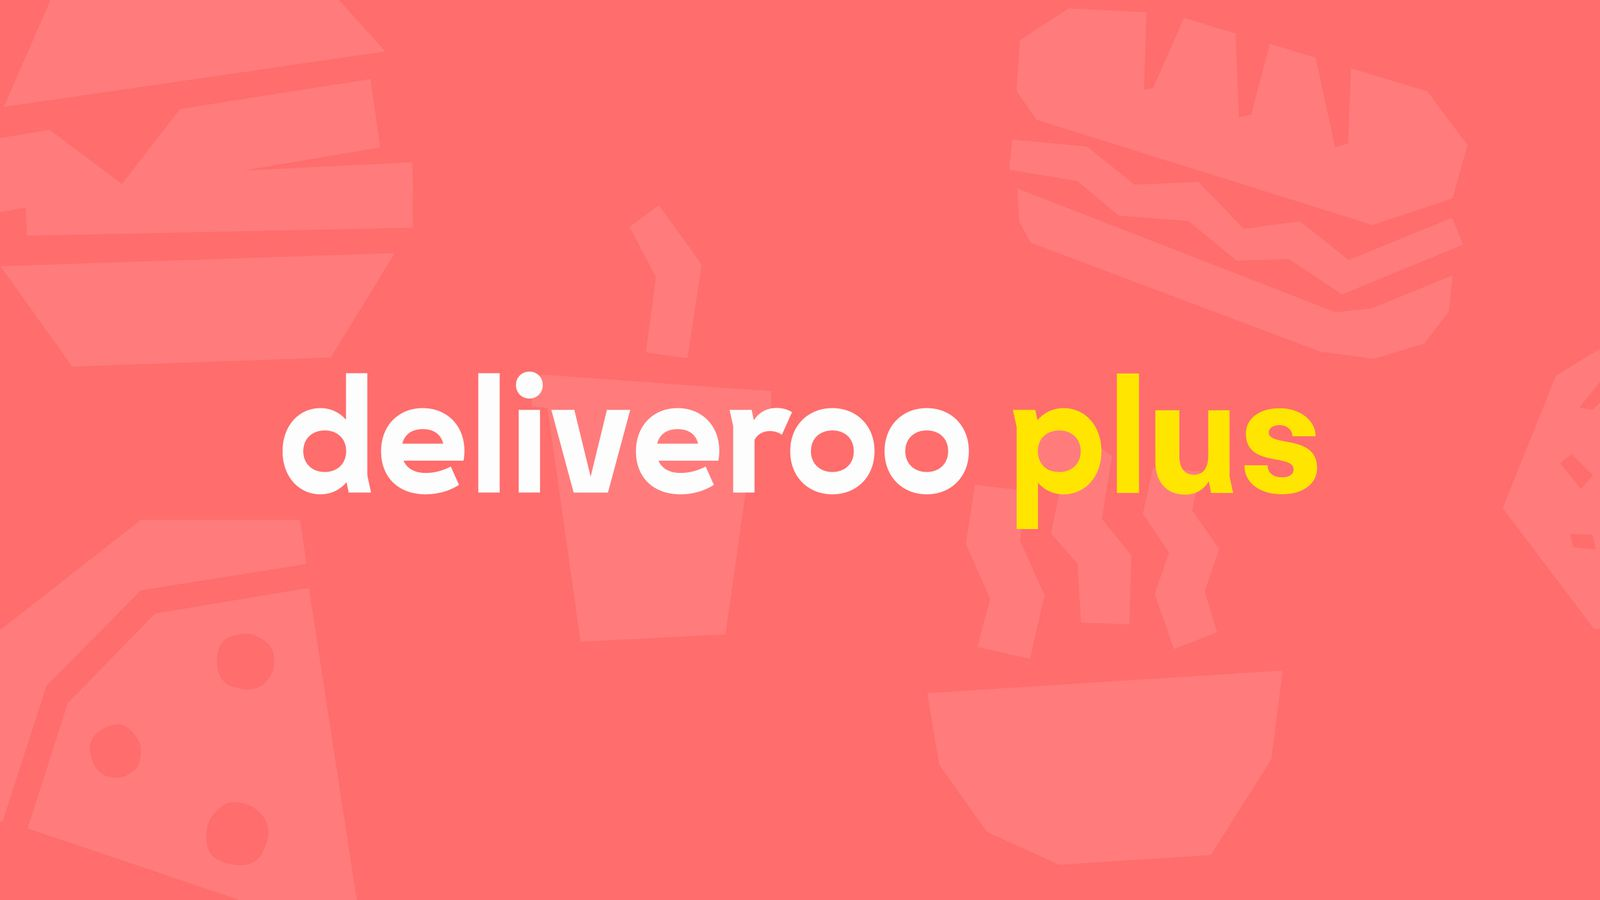 Deliveroo Launches a Flat Monthly Subscription for Food Deliveries in the UK